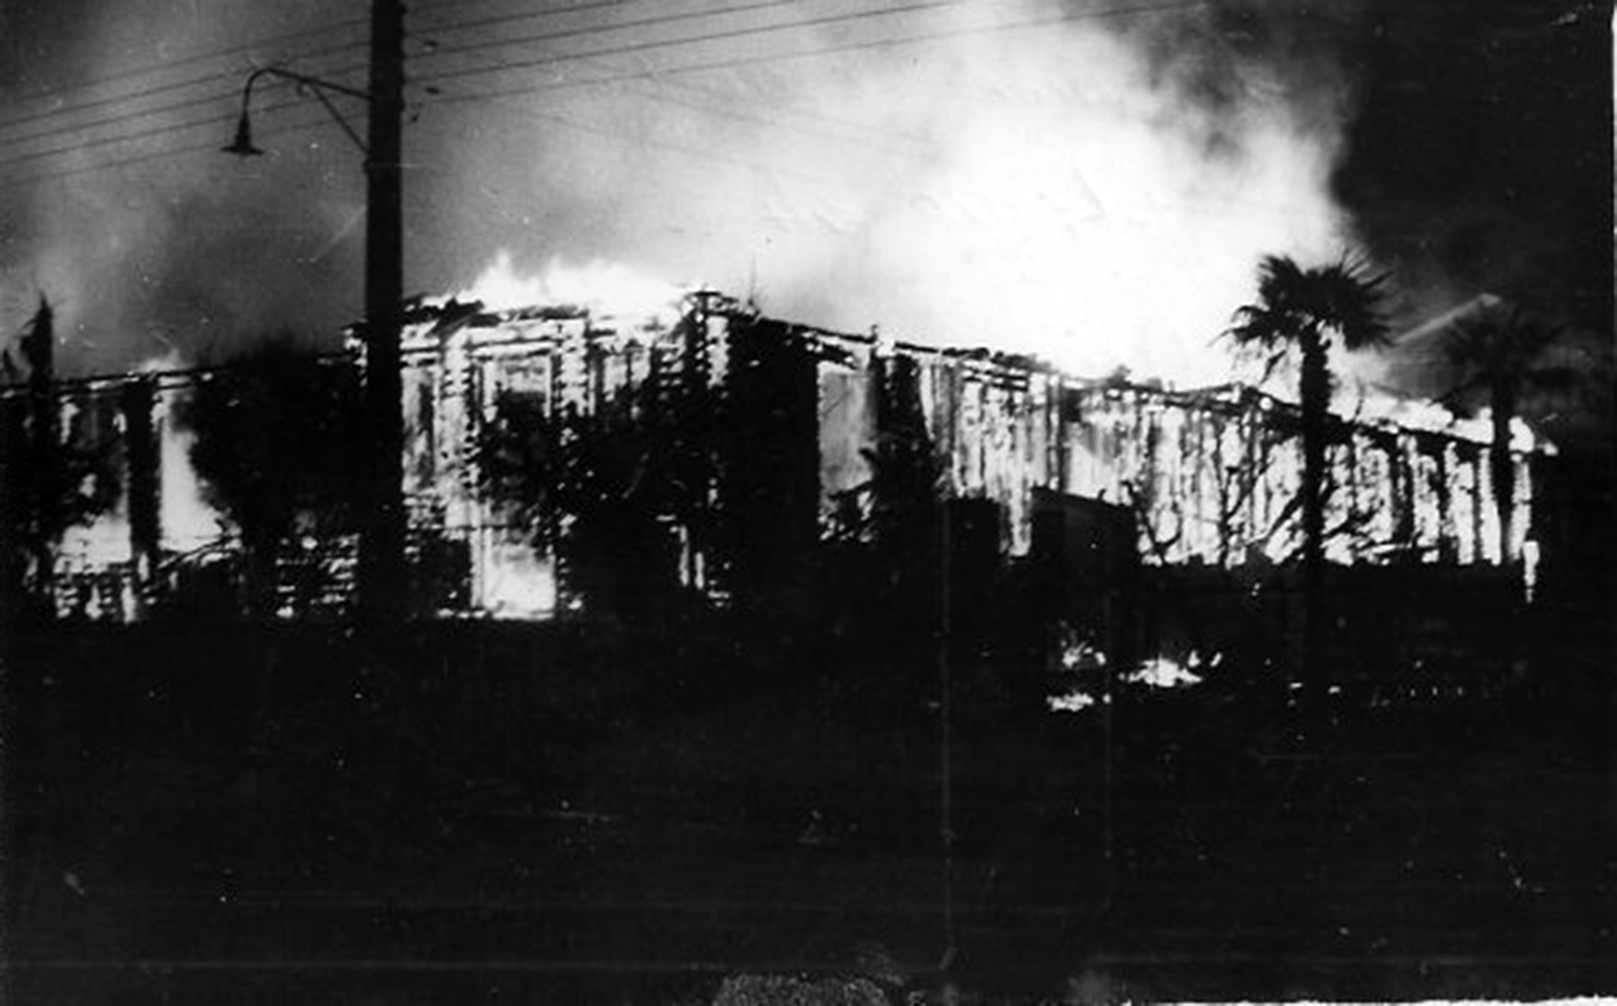 Enterreno - Fotos históricas de chile - fotos antiguas de Chile - Incendio de la Escuela Normal Femenina de Angol, 1960